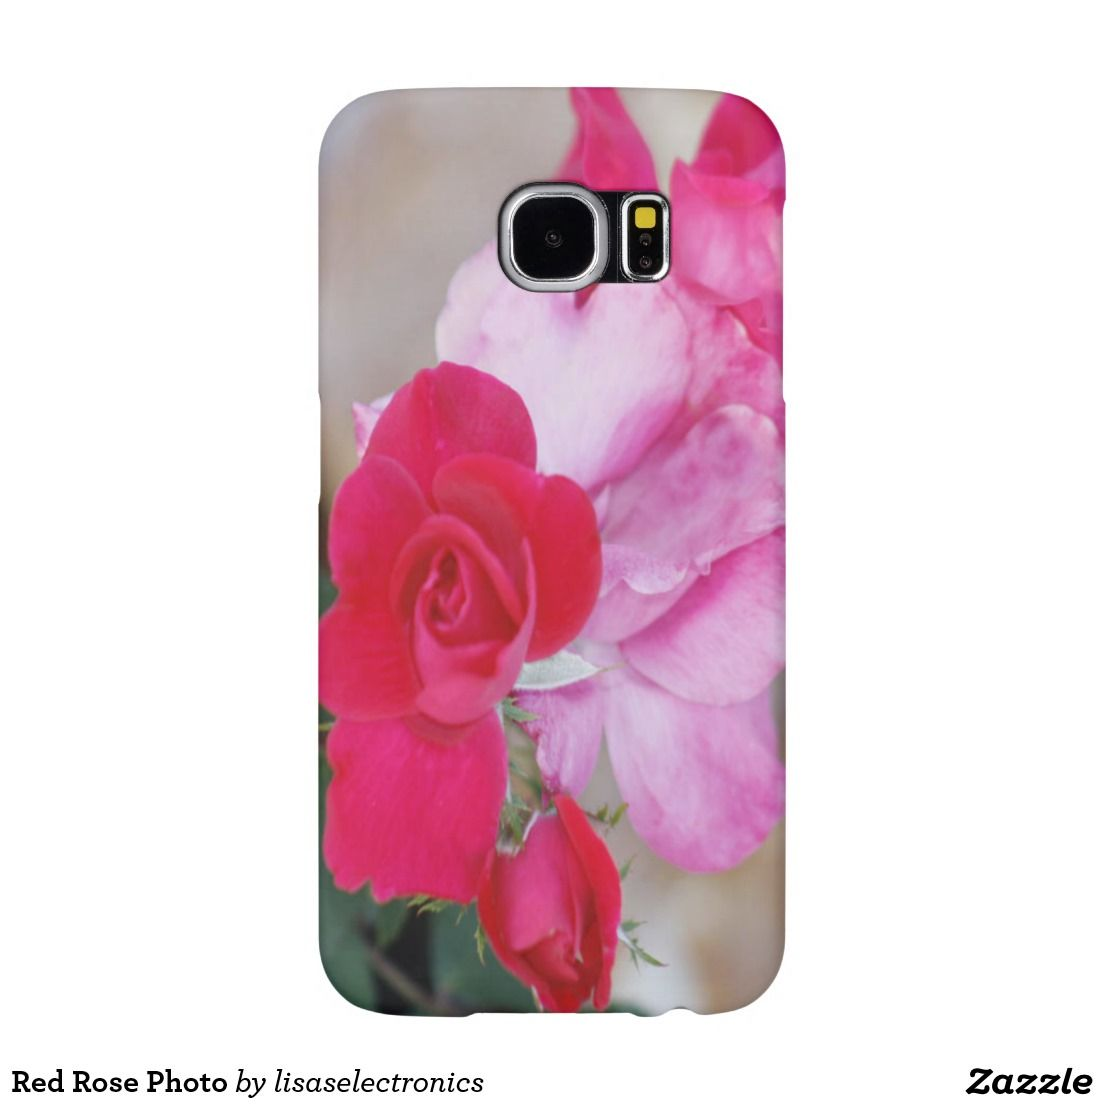 Red Rose Photo Samsung Galaxy S6 Cases